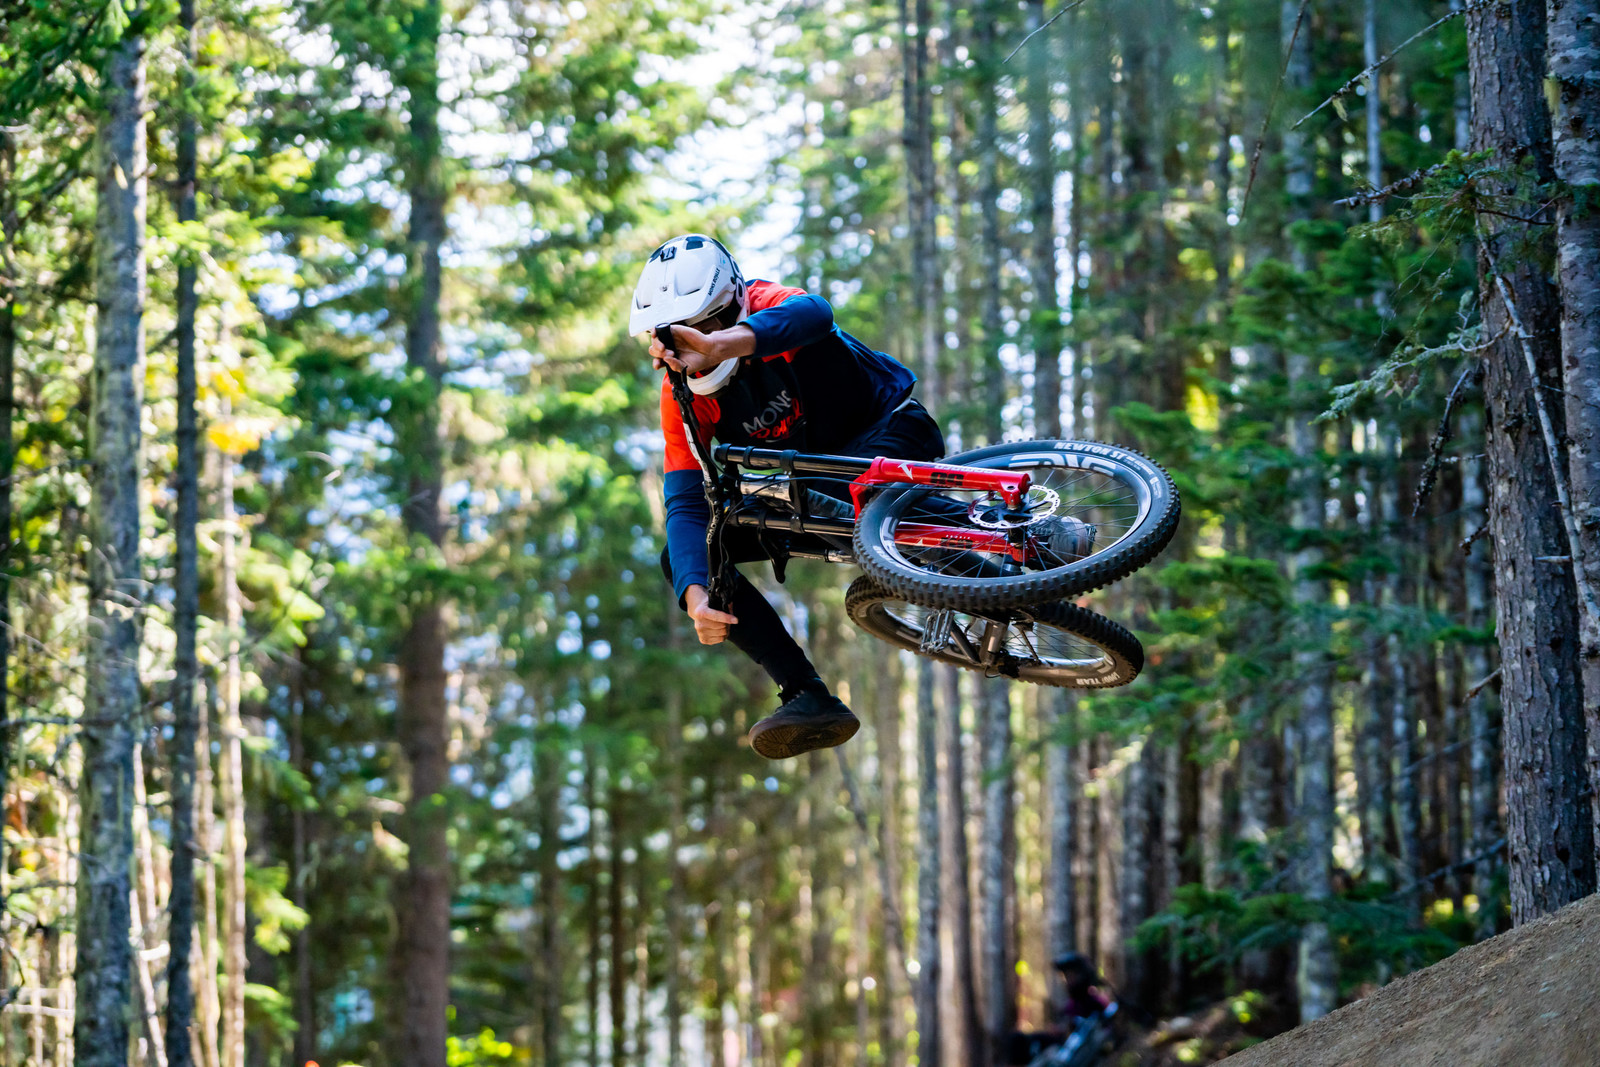 Conor Macfarlane styling through Whistler | #IRIDEENVE